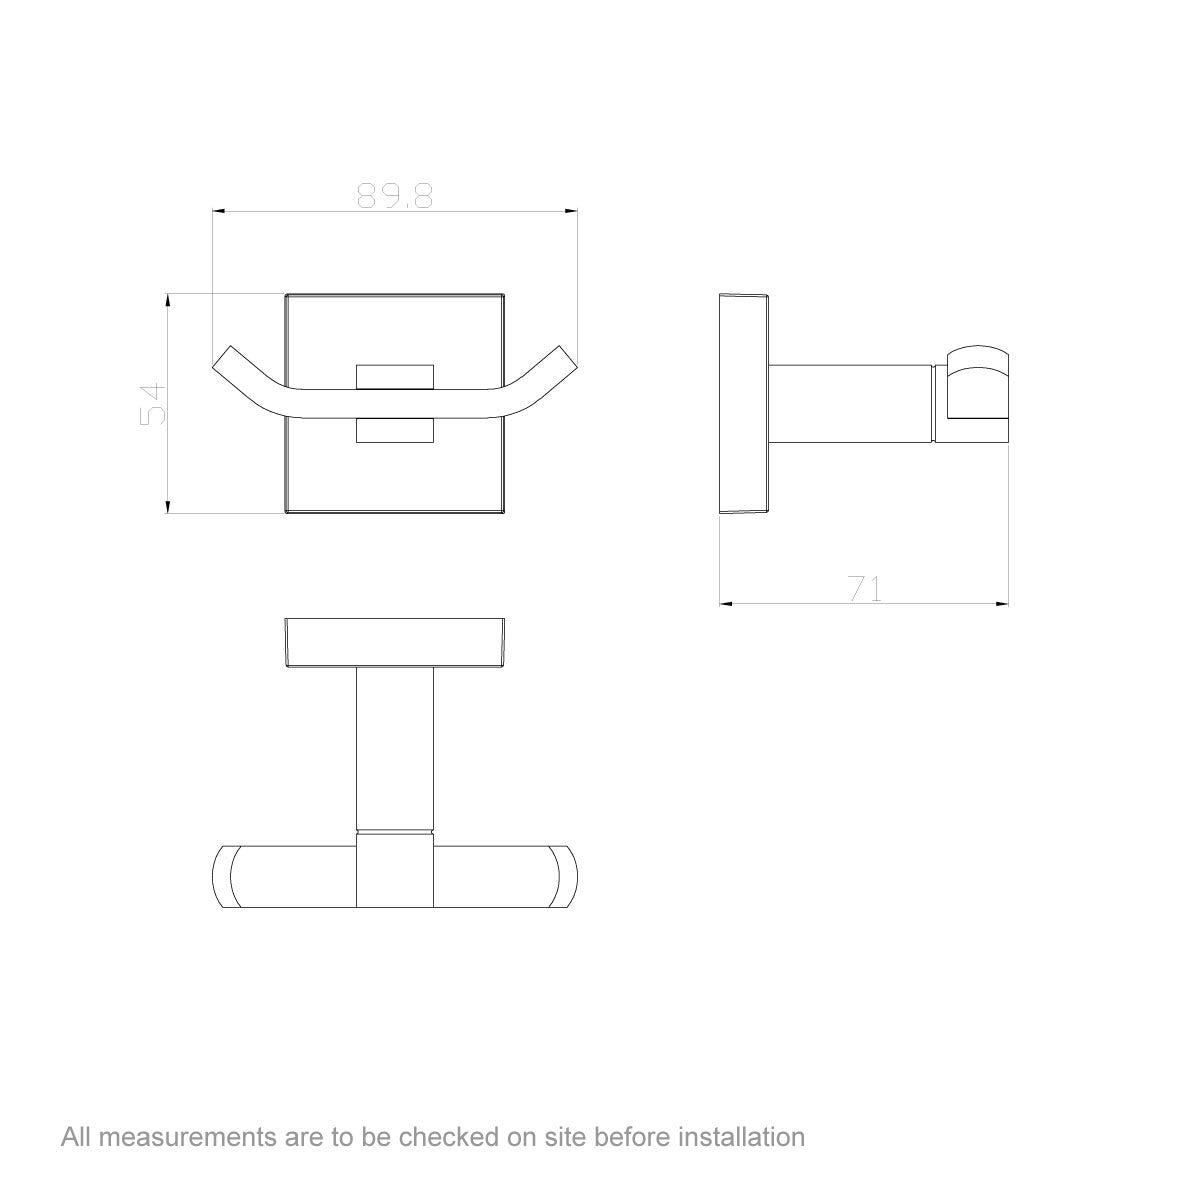 Dimensions for Orchard Flex robe hook